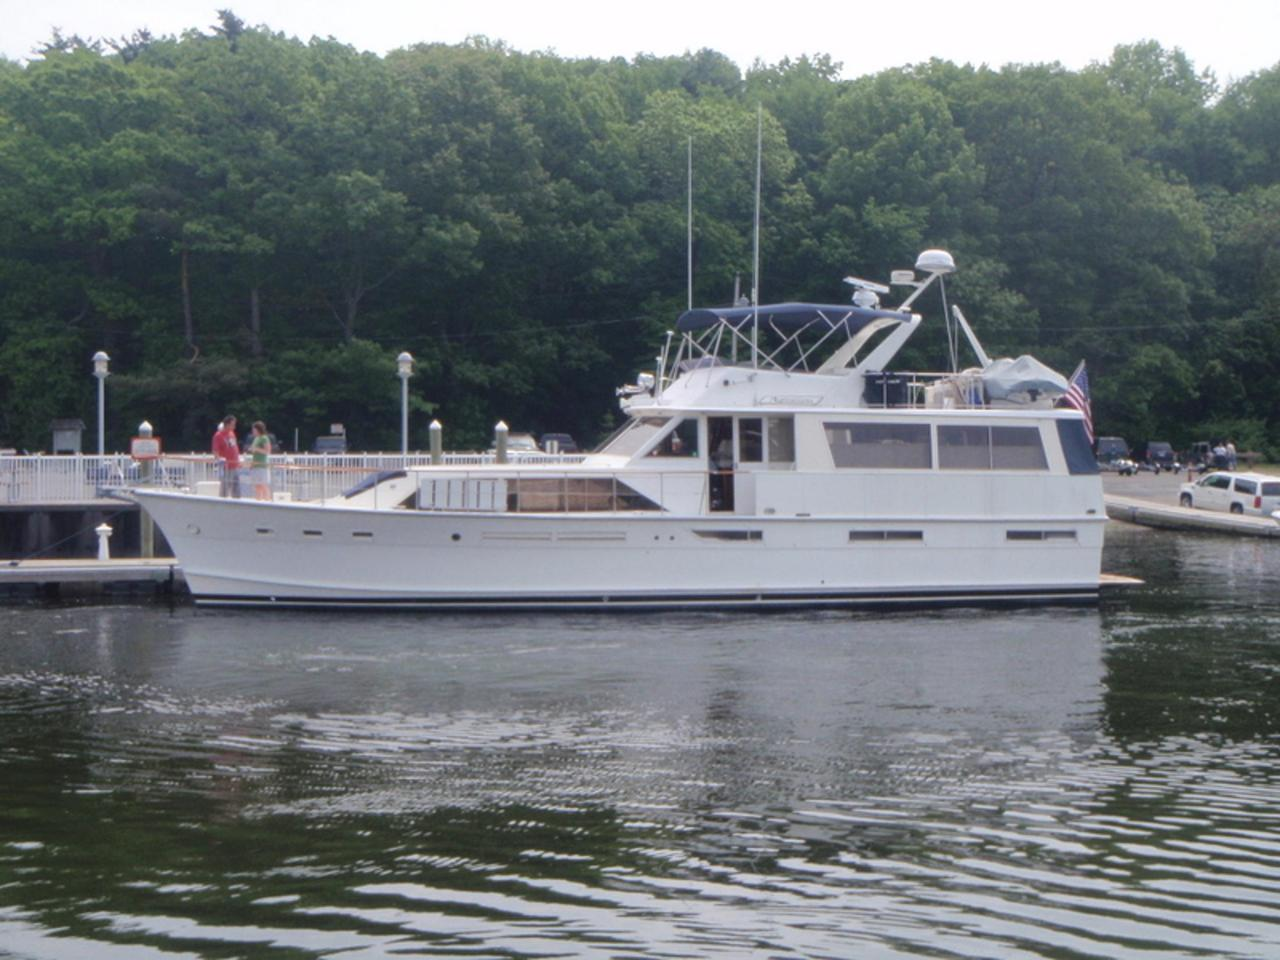 1977 used pacemaker motor yacht for sale 299 000 for Used boat motors for sale in sc